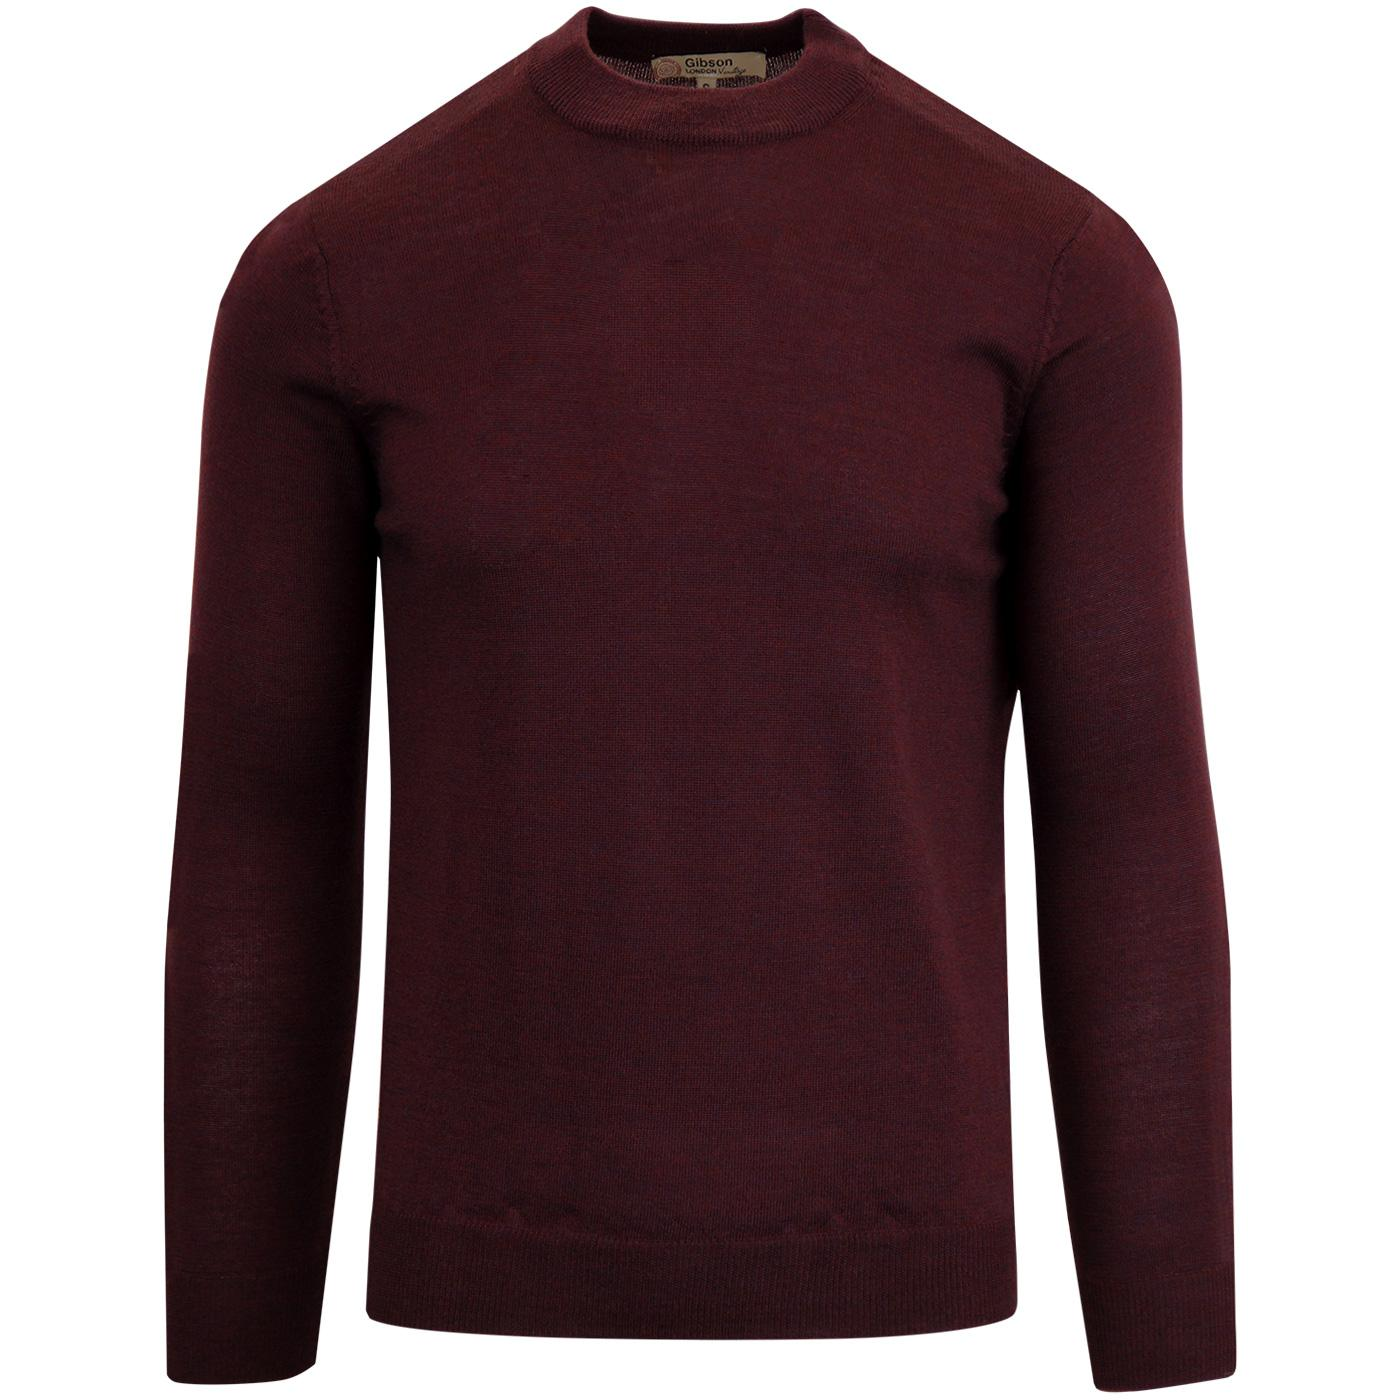 GIBSON LONDON Mod Mock Turtle Neck Jumper BURGUNDY